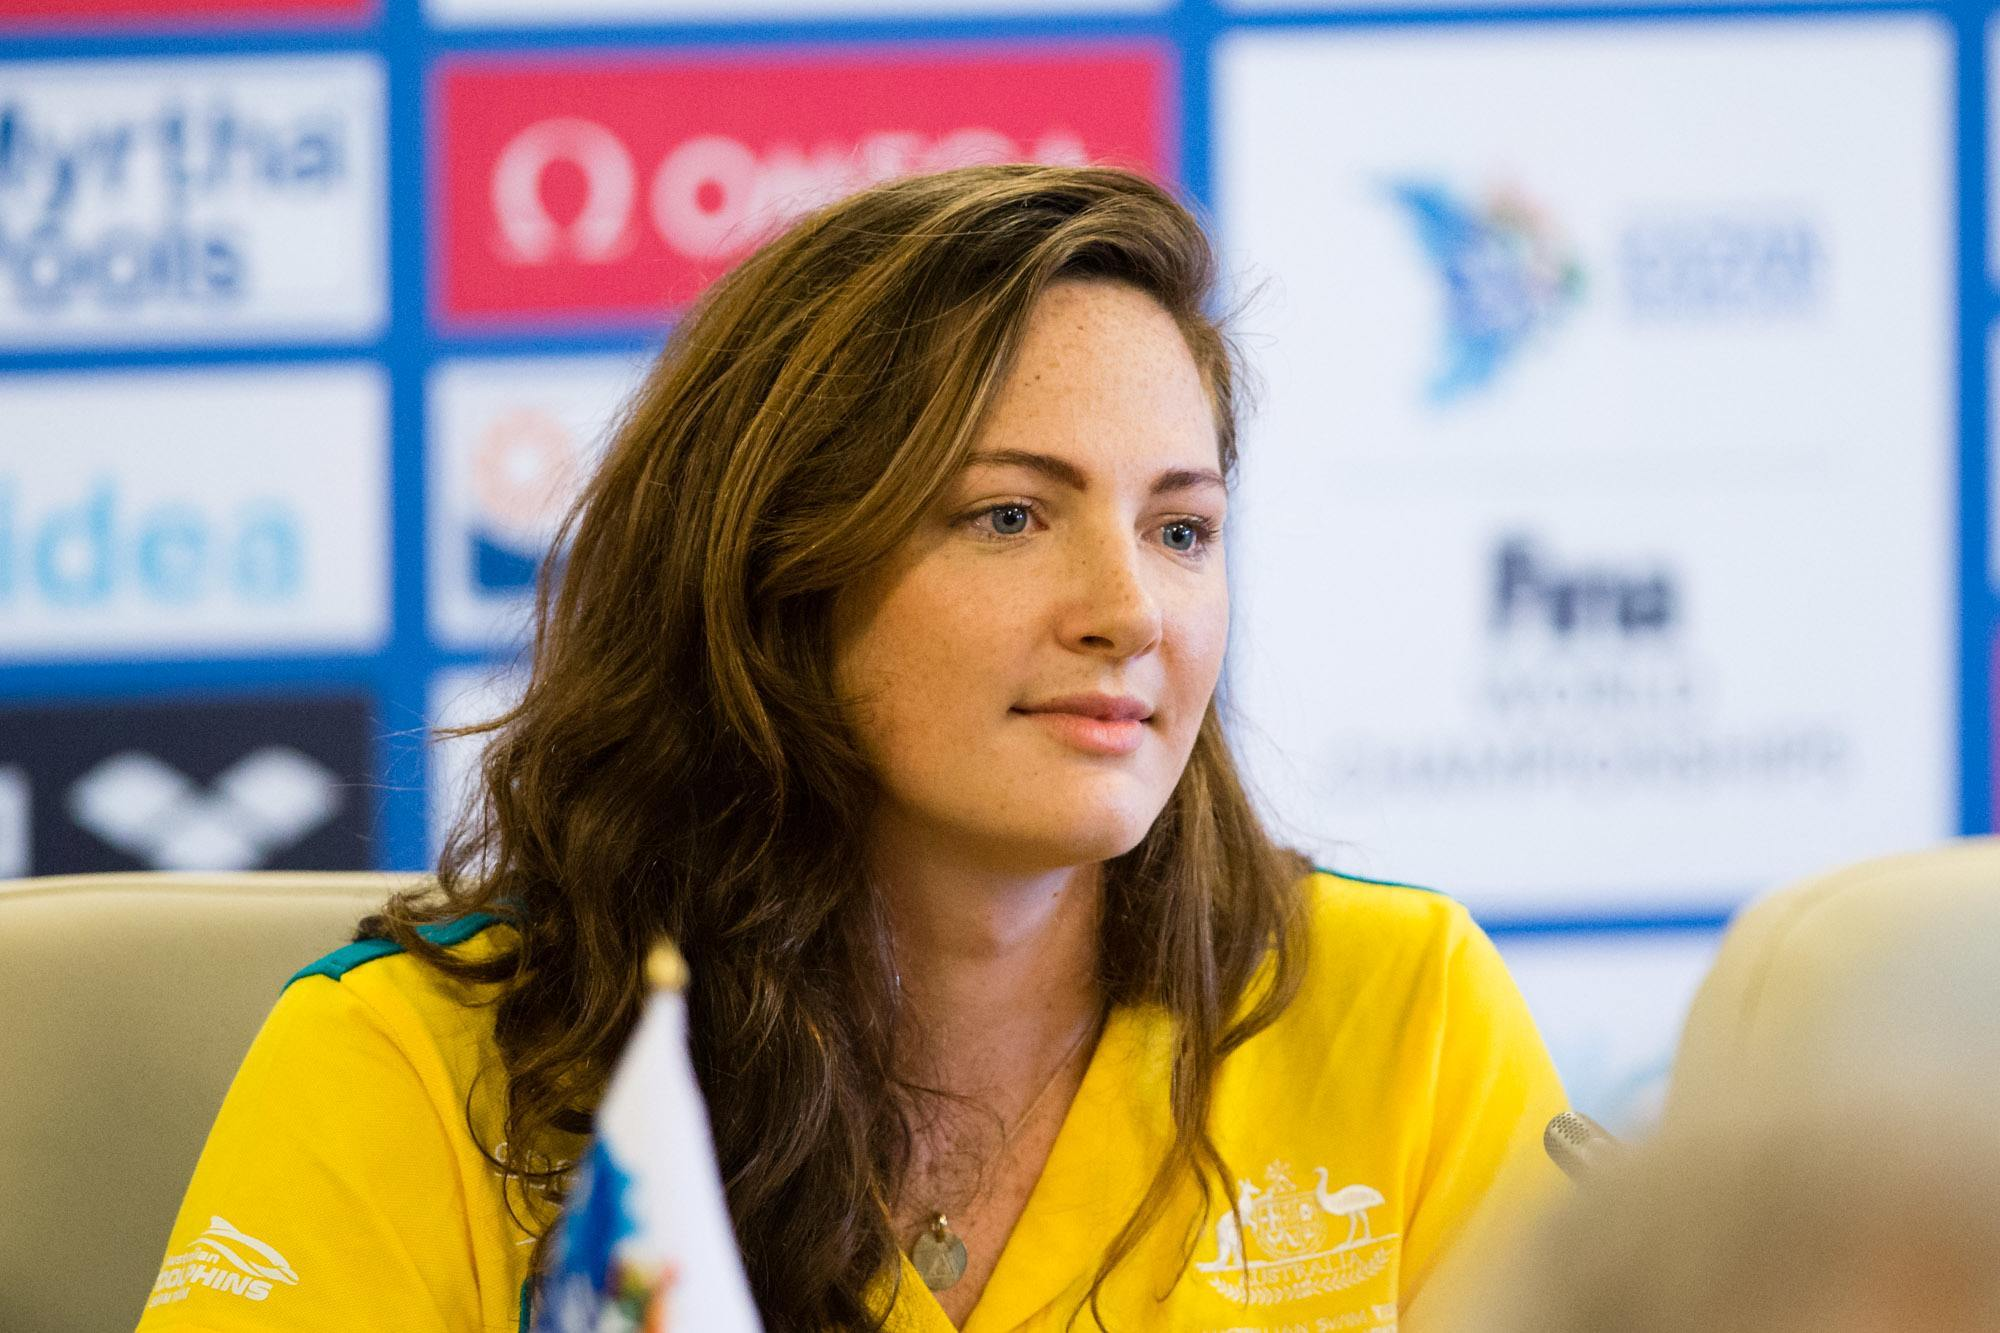 Cate Campbell Contro I